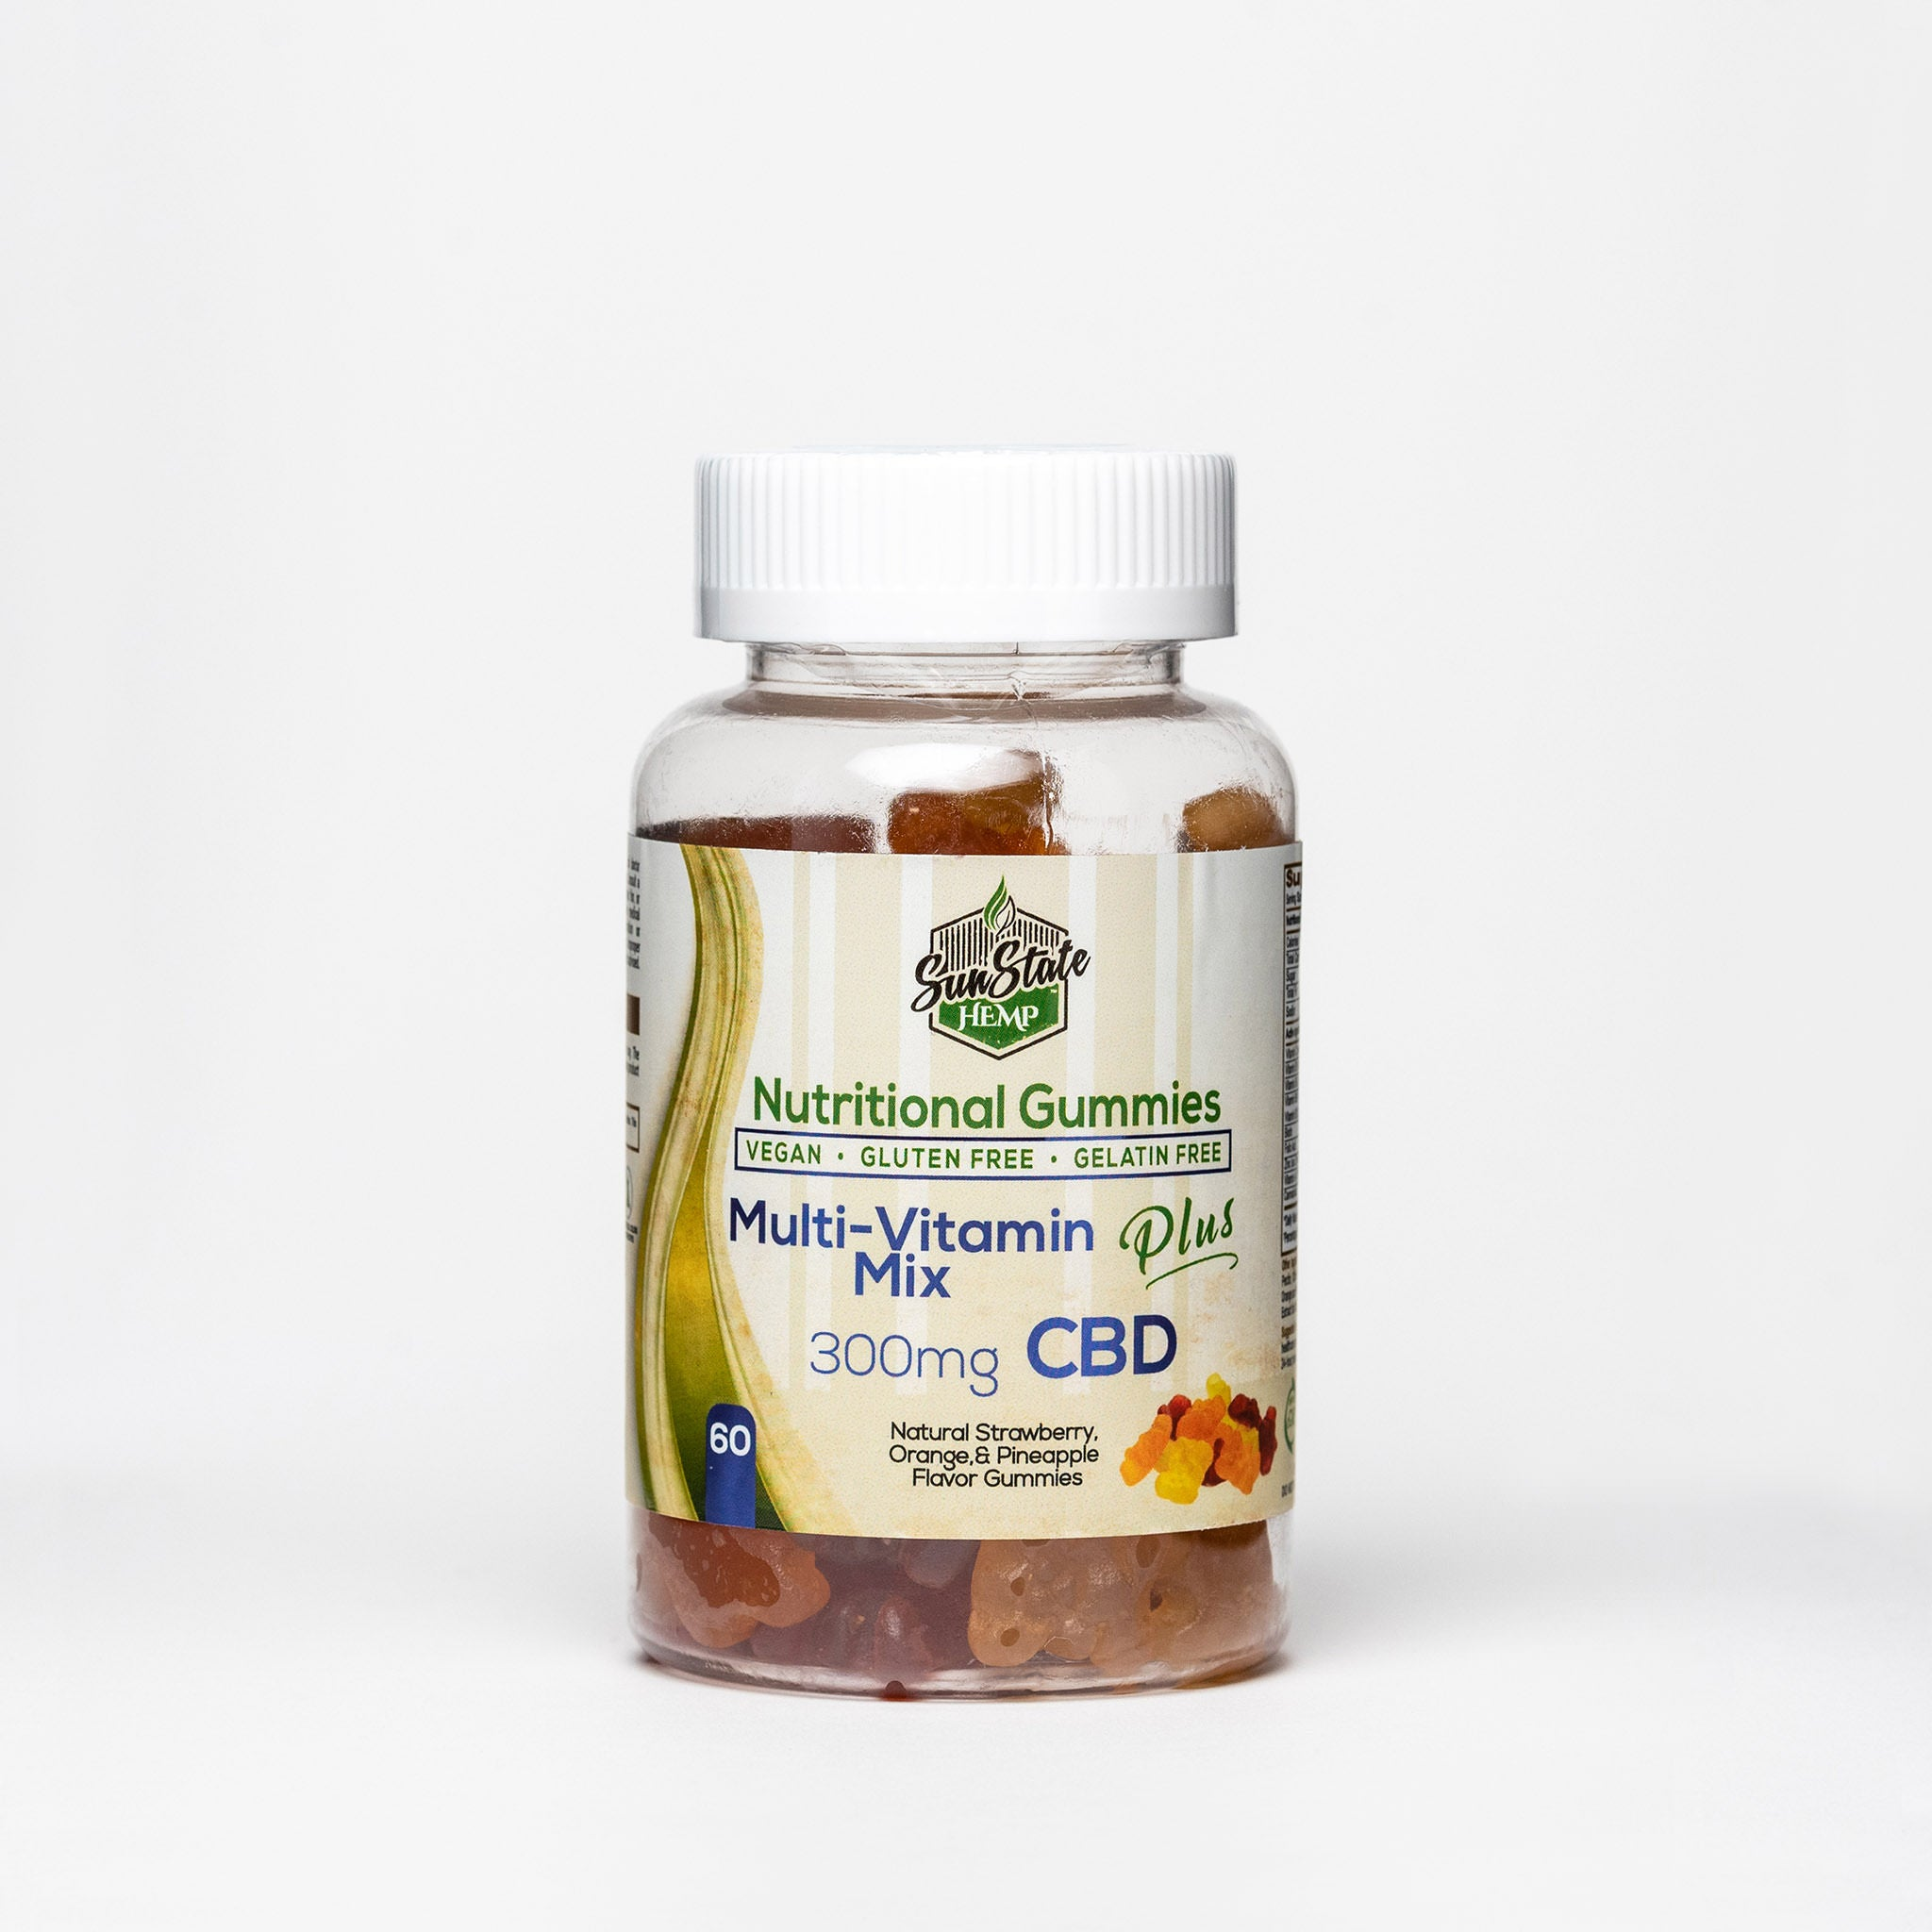 Sun State Hemp CBD Nutritional Gummies - Alleviate Wellness